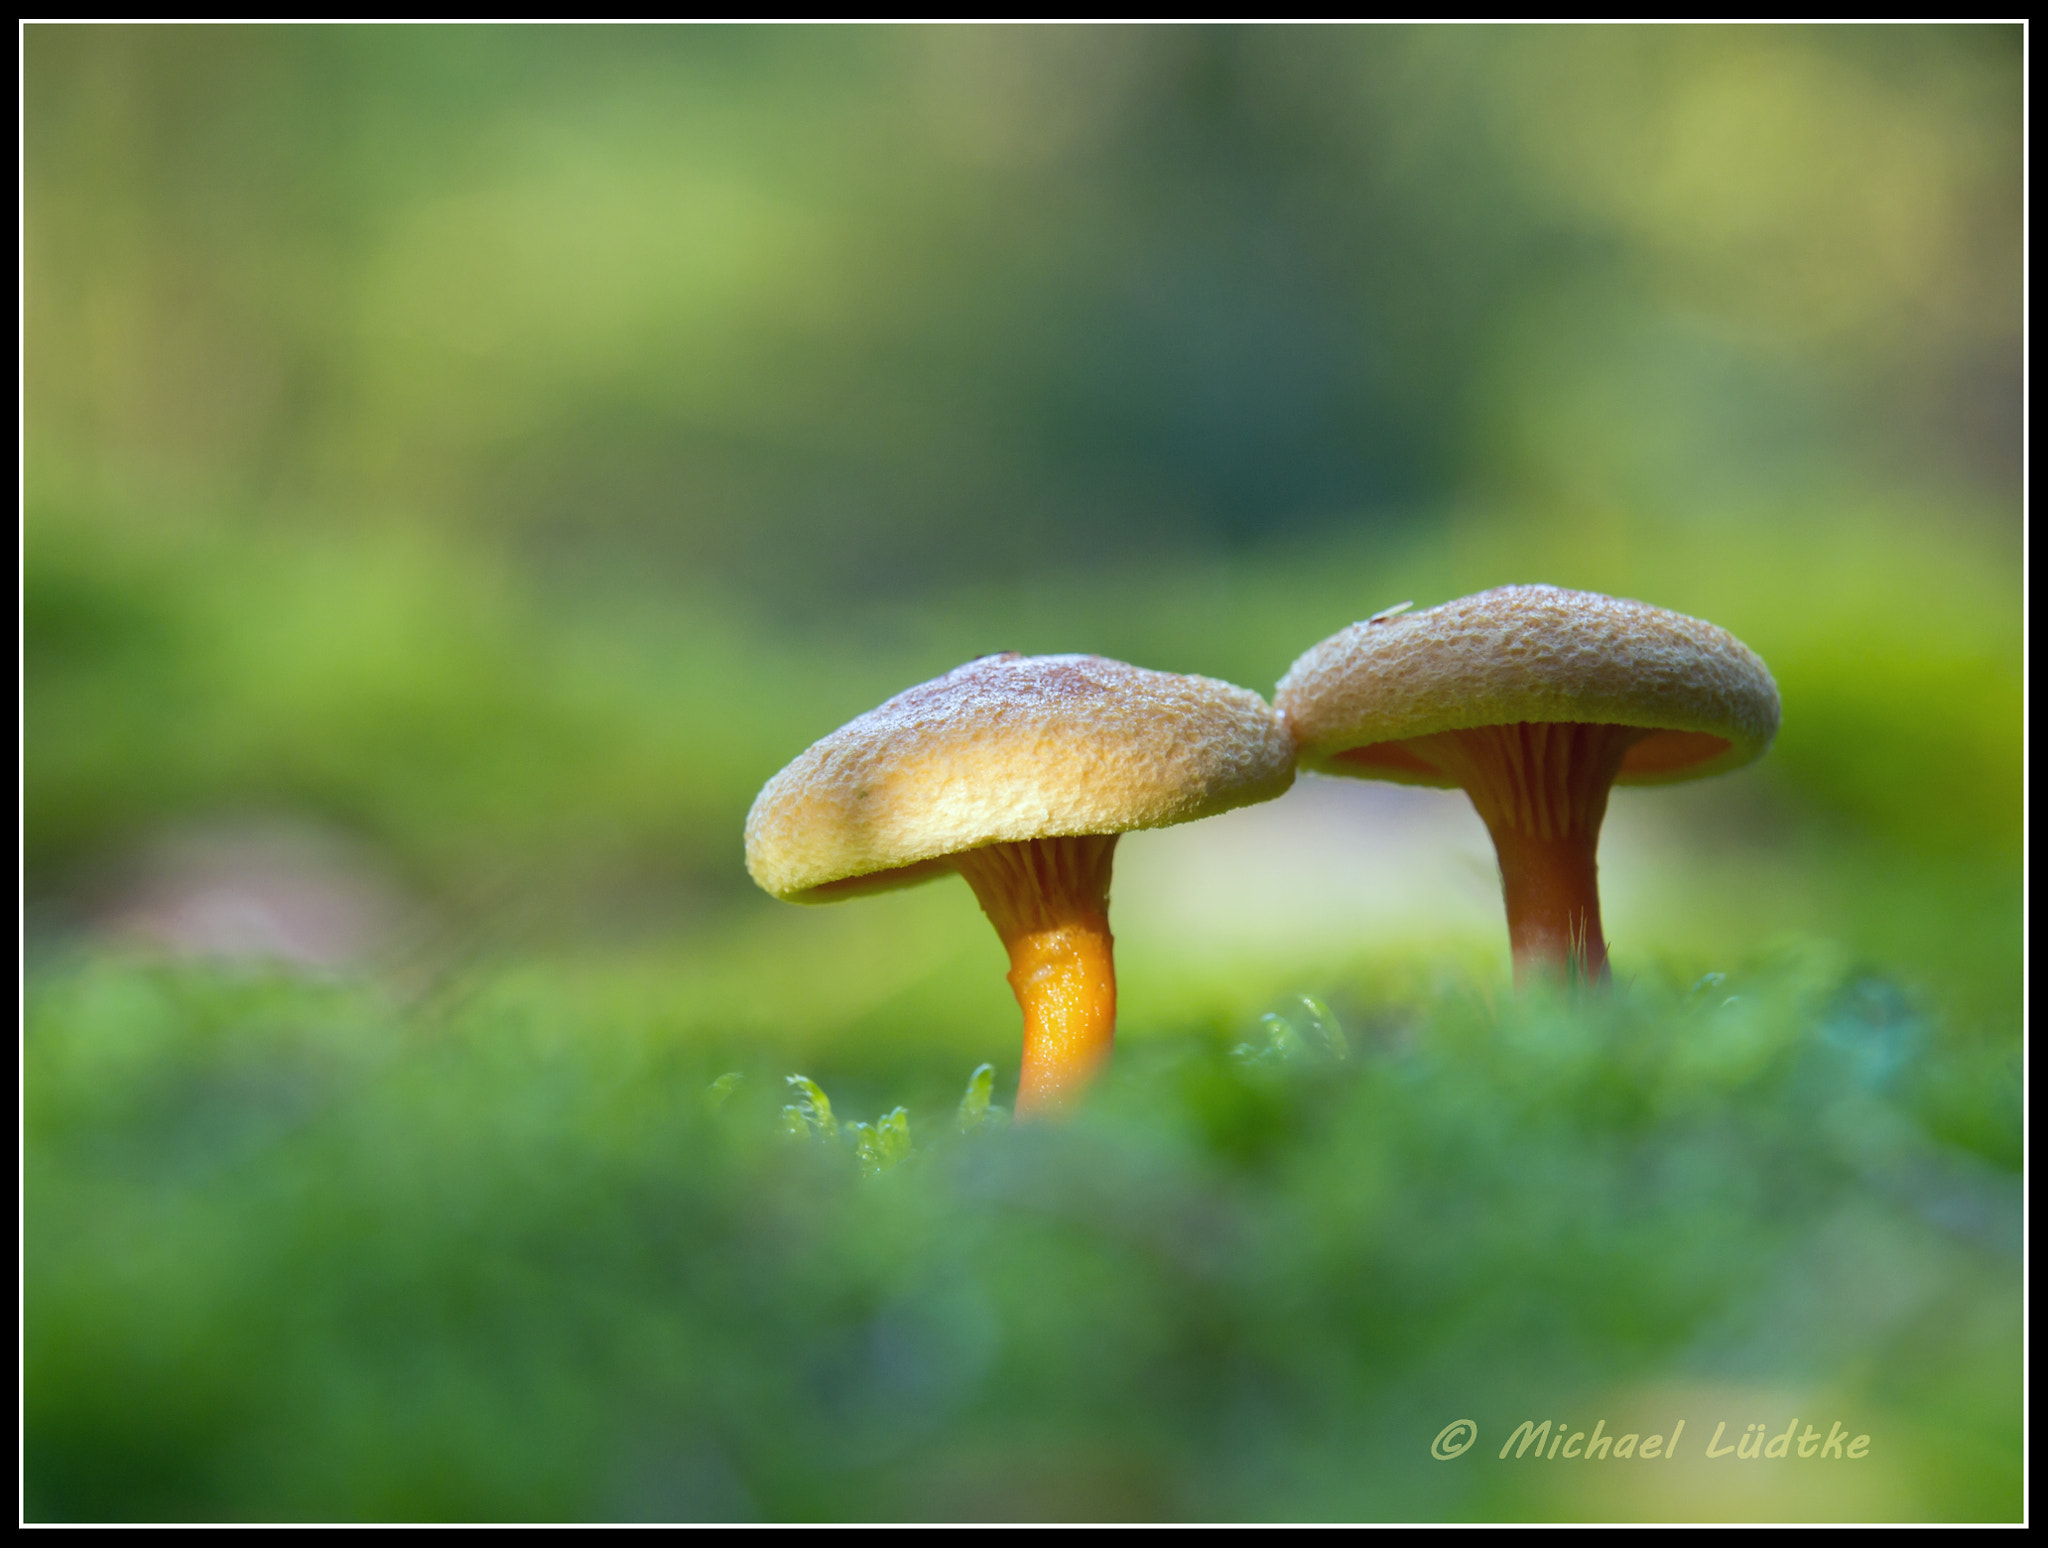 Photograph Mushrooms by Michael Lüdtke on 500px